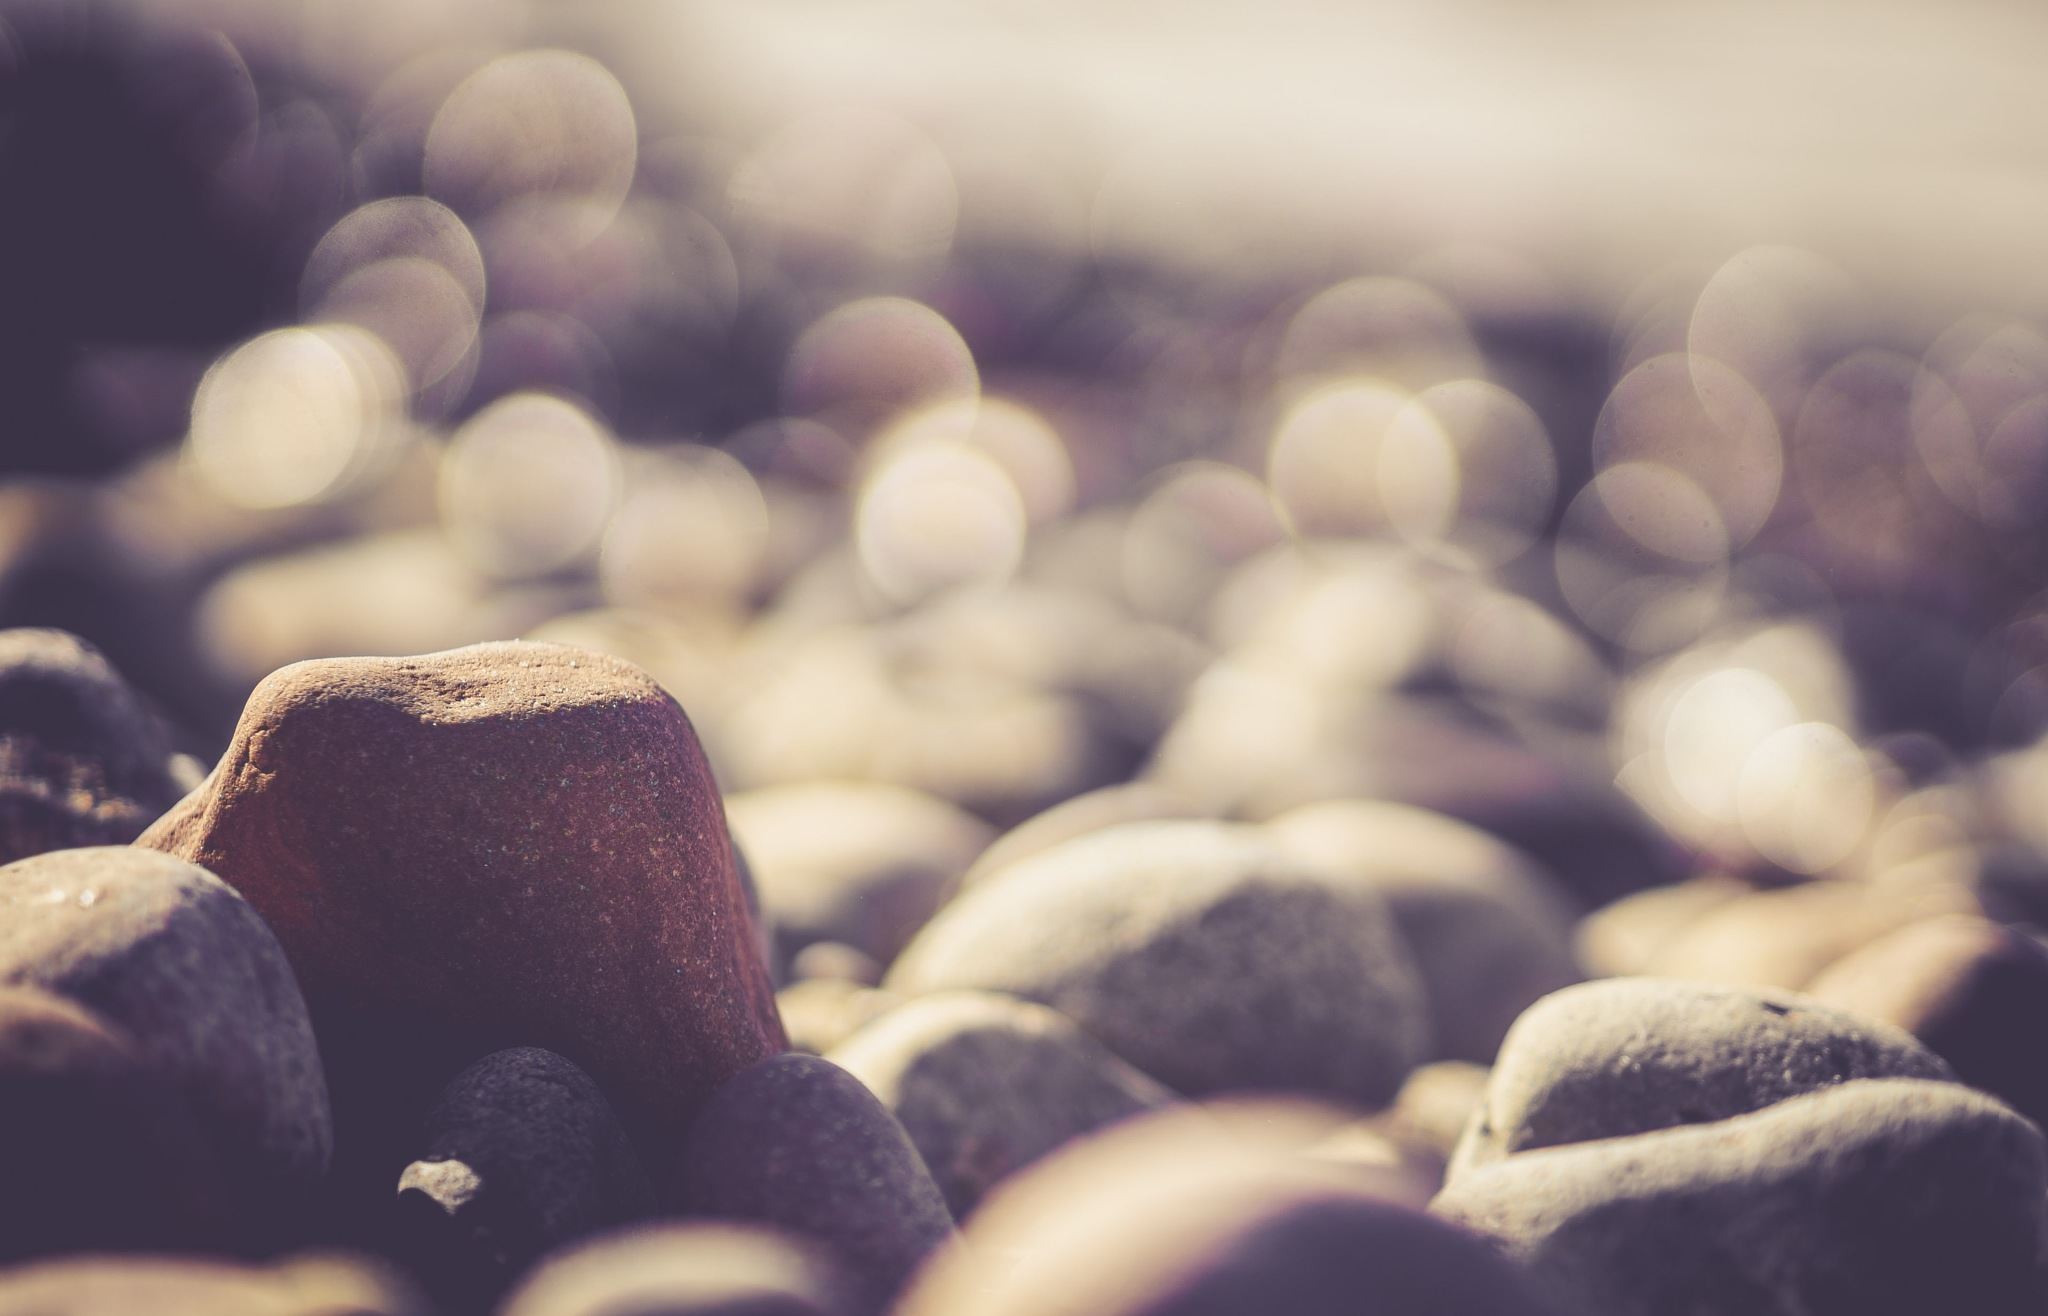 A stone alone under stones by LightInfection